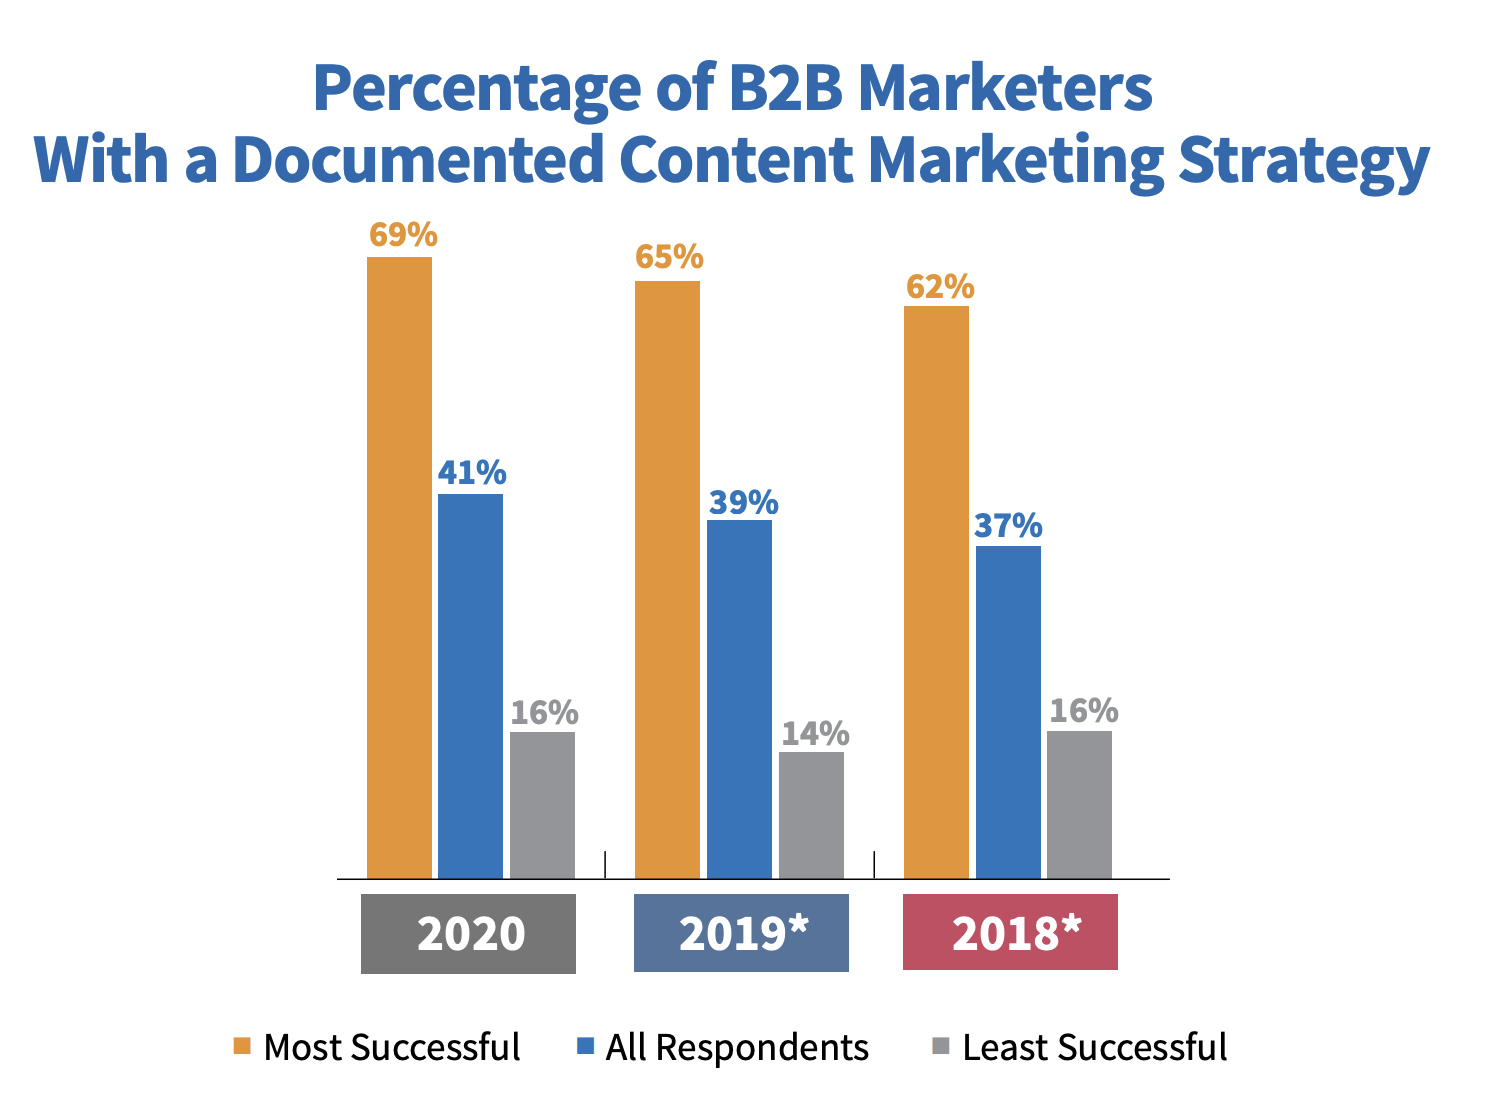 Percentage of B2B marketers with a documented content marketing strategy